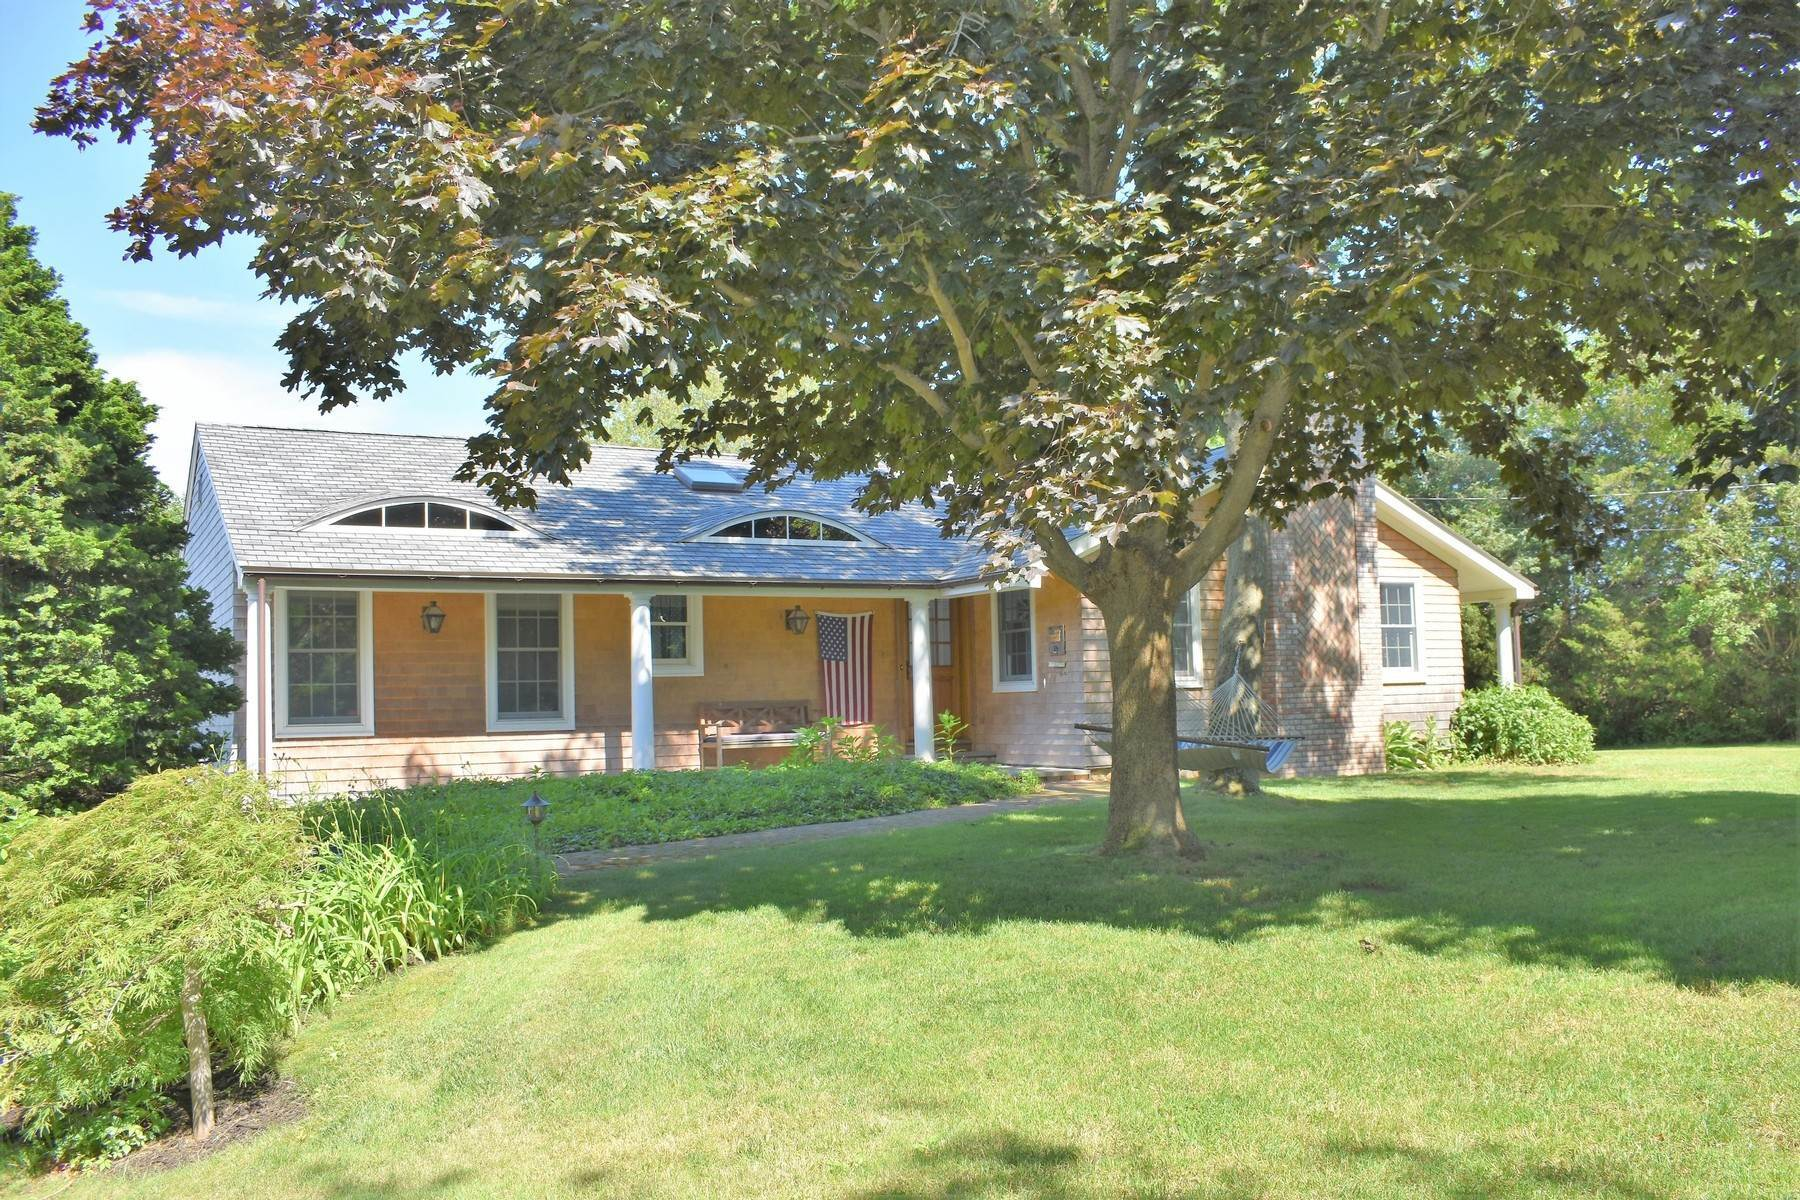 Single Family Home at Lovely 3br Country Style Water Mill Home Water Mill, NY 11976